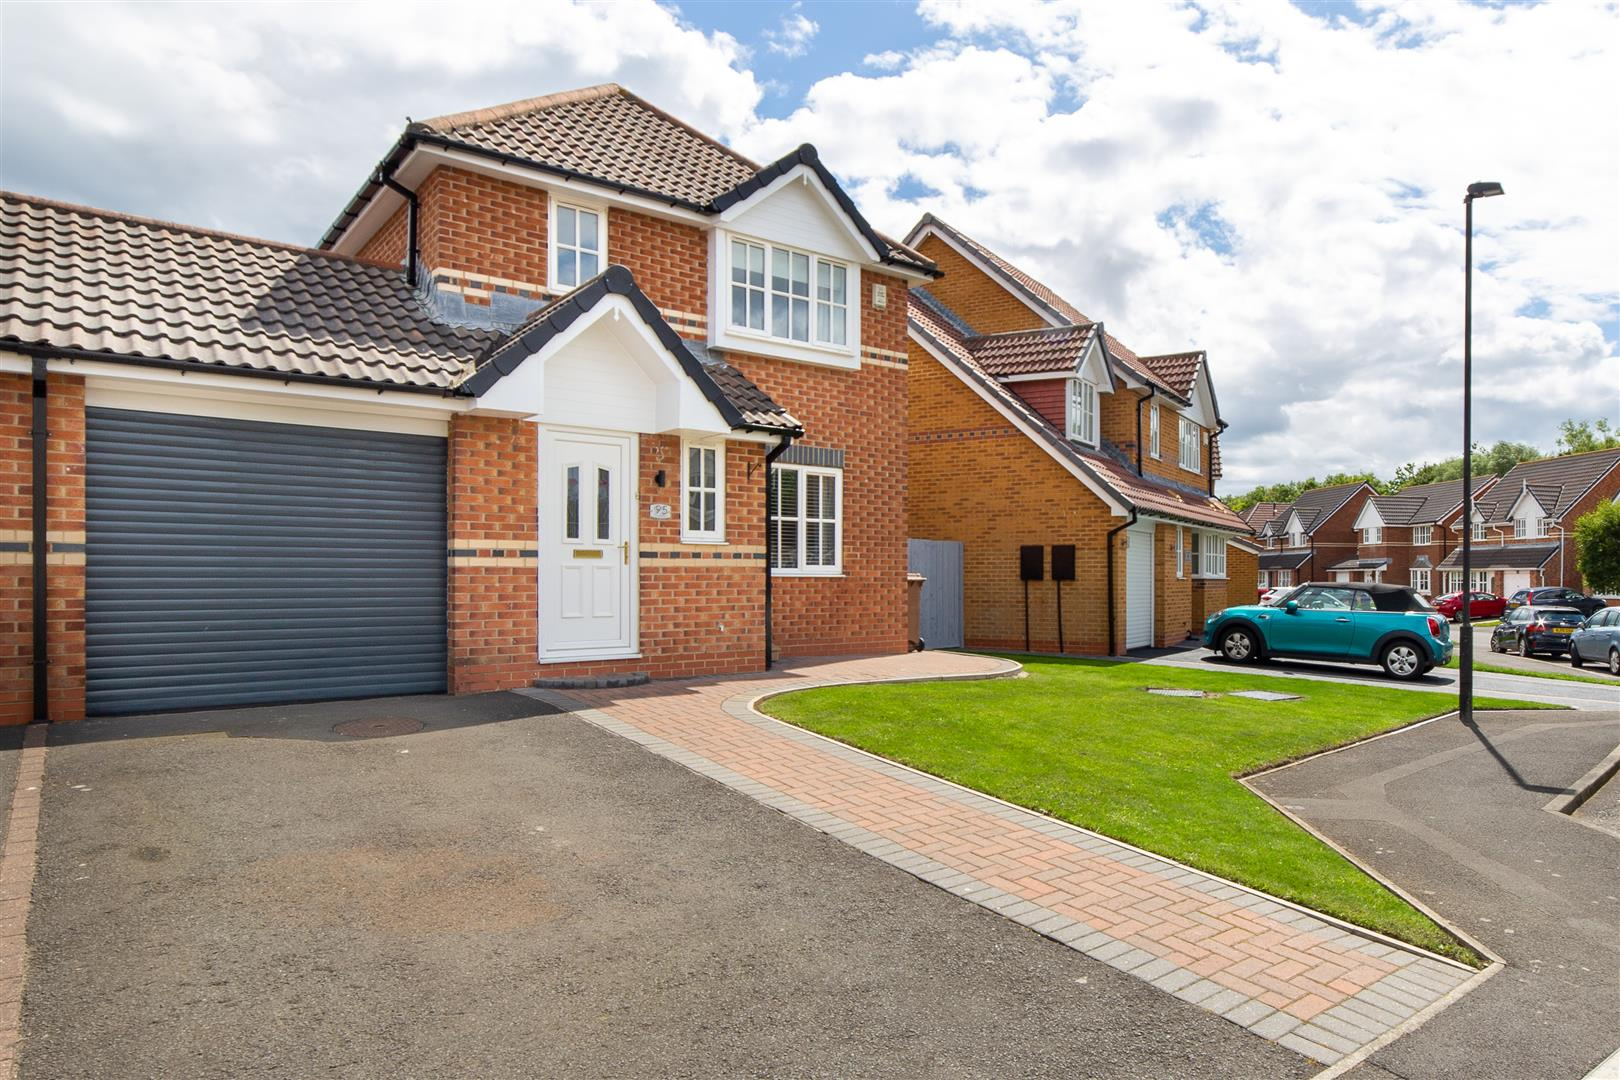 3 bed detached house for sale in Northumberland Park, NE27 0RF 0